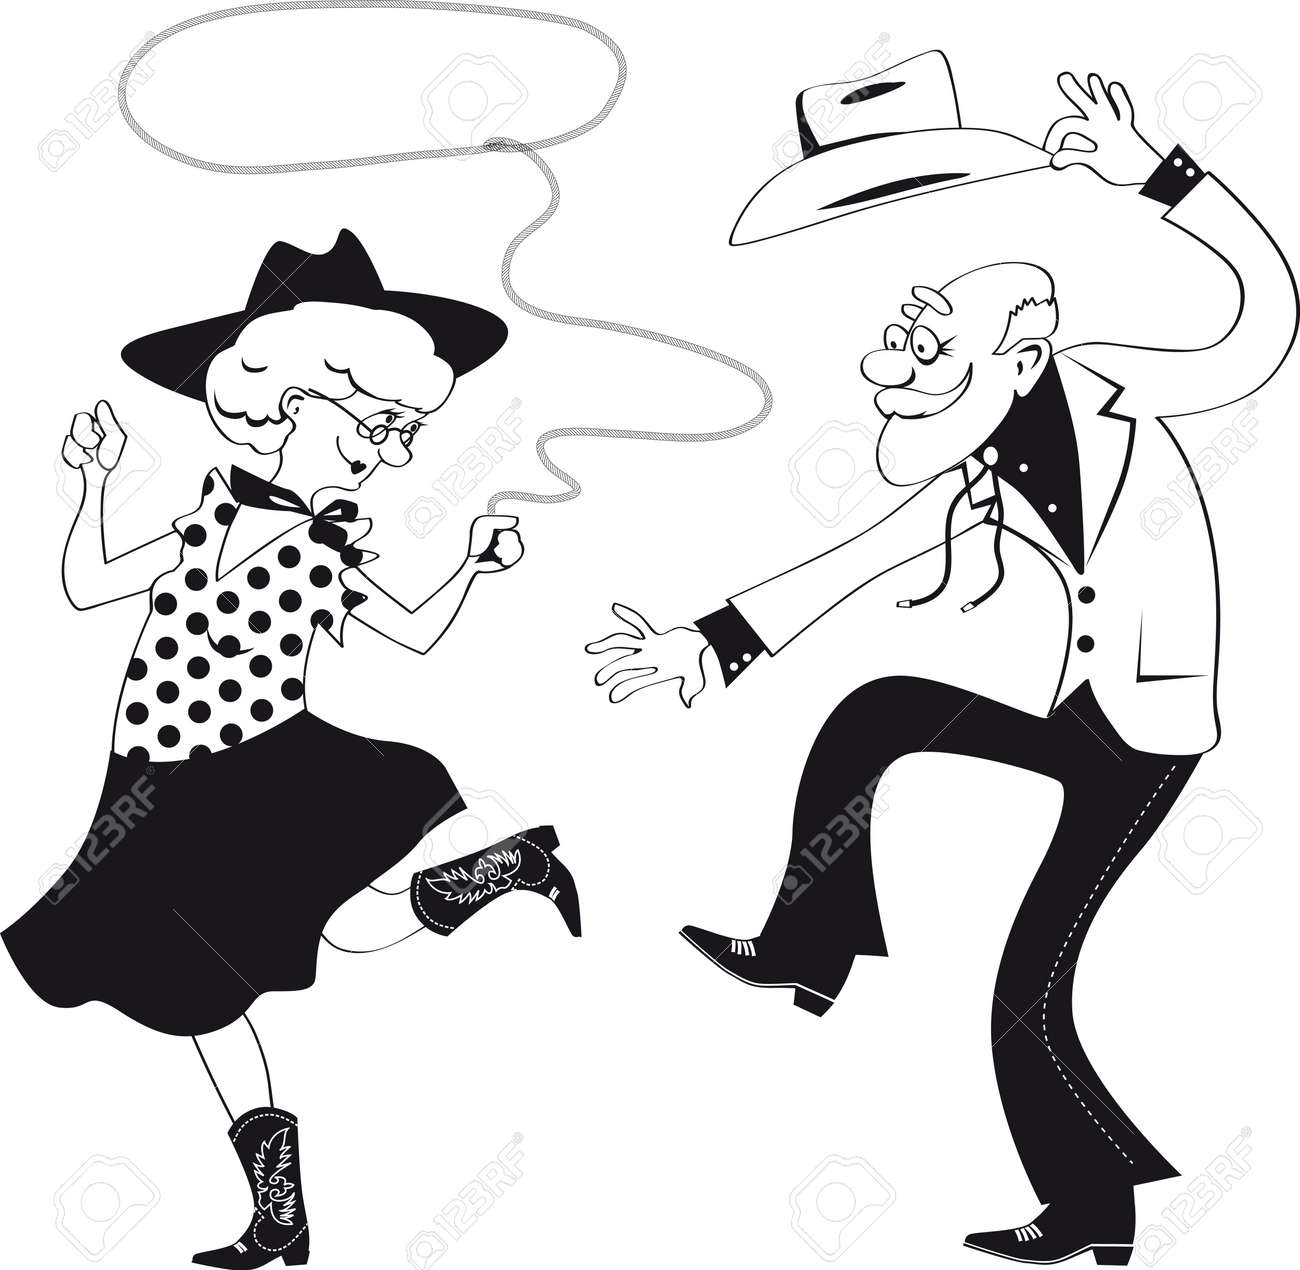 Vector line art of a senior couple dressed in traditional western costumes dancing square dance or contradance - 63512567